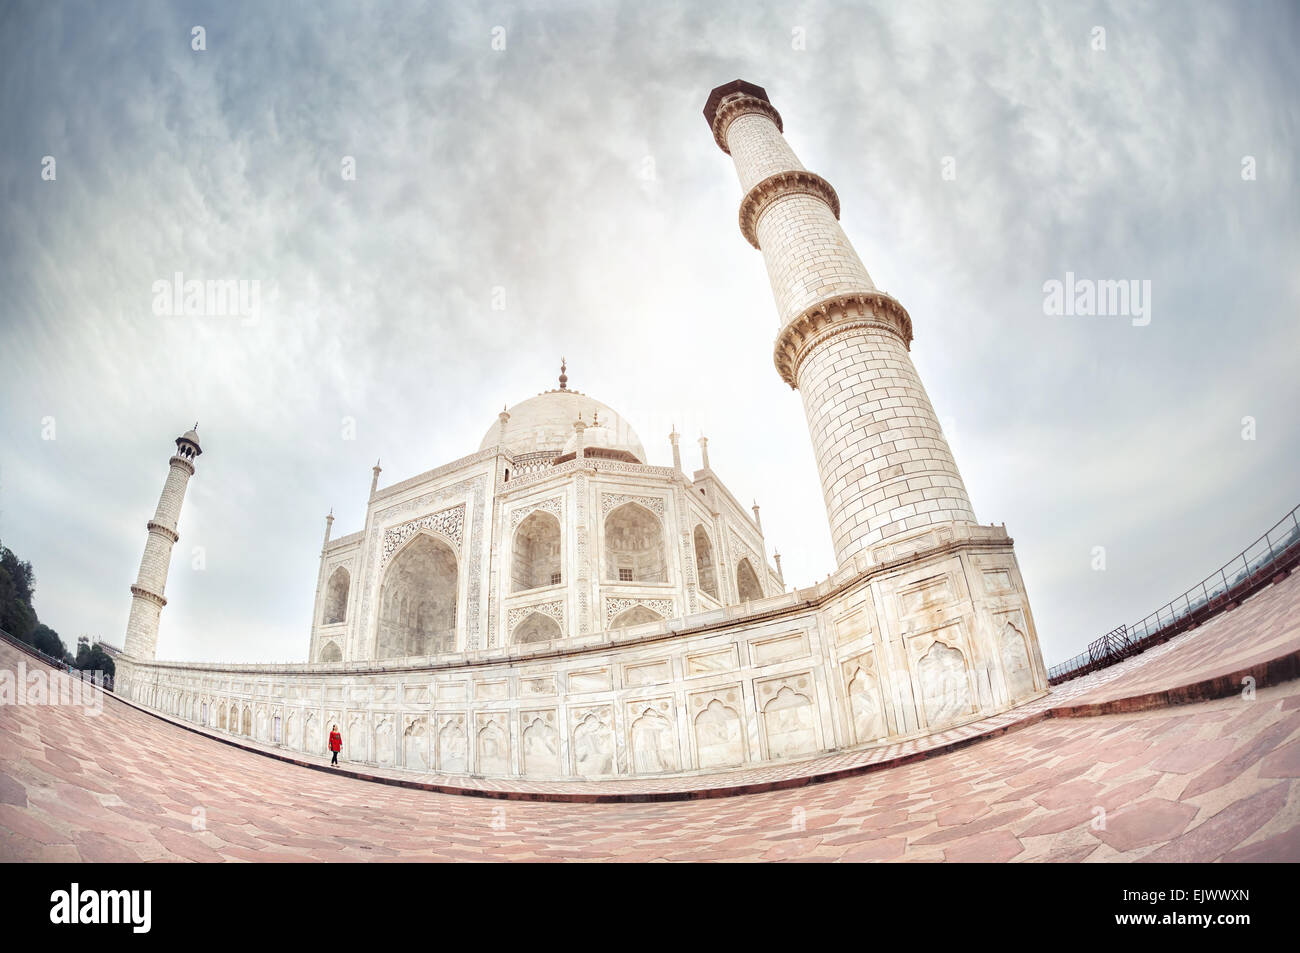 Woman in red walking near Taj Mahal at dramatic sky in Agra, Uttar Pradesh, India - Stock Image